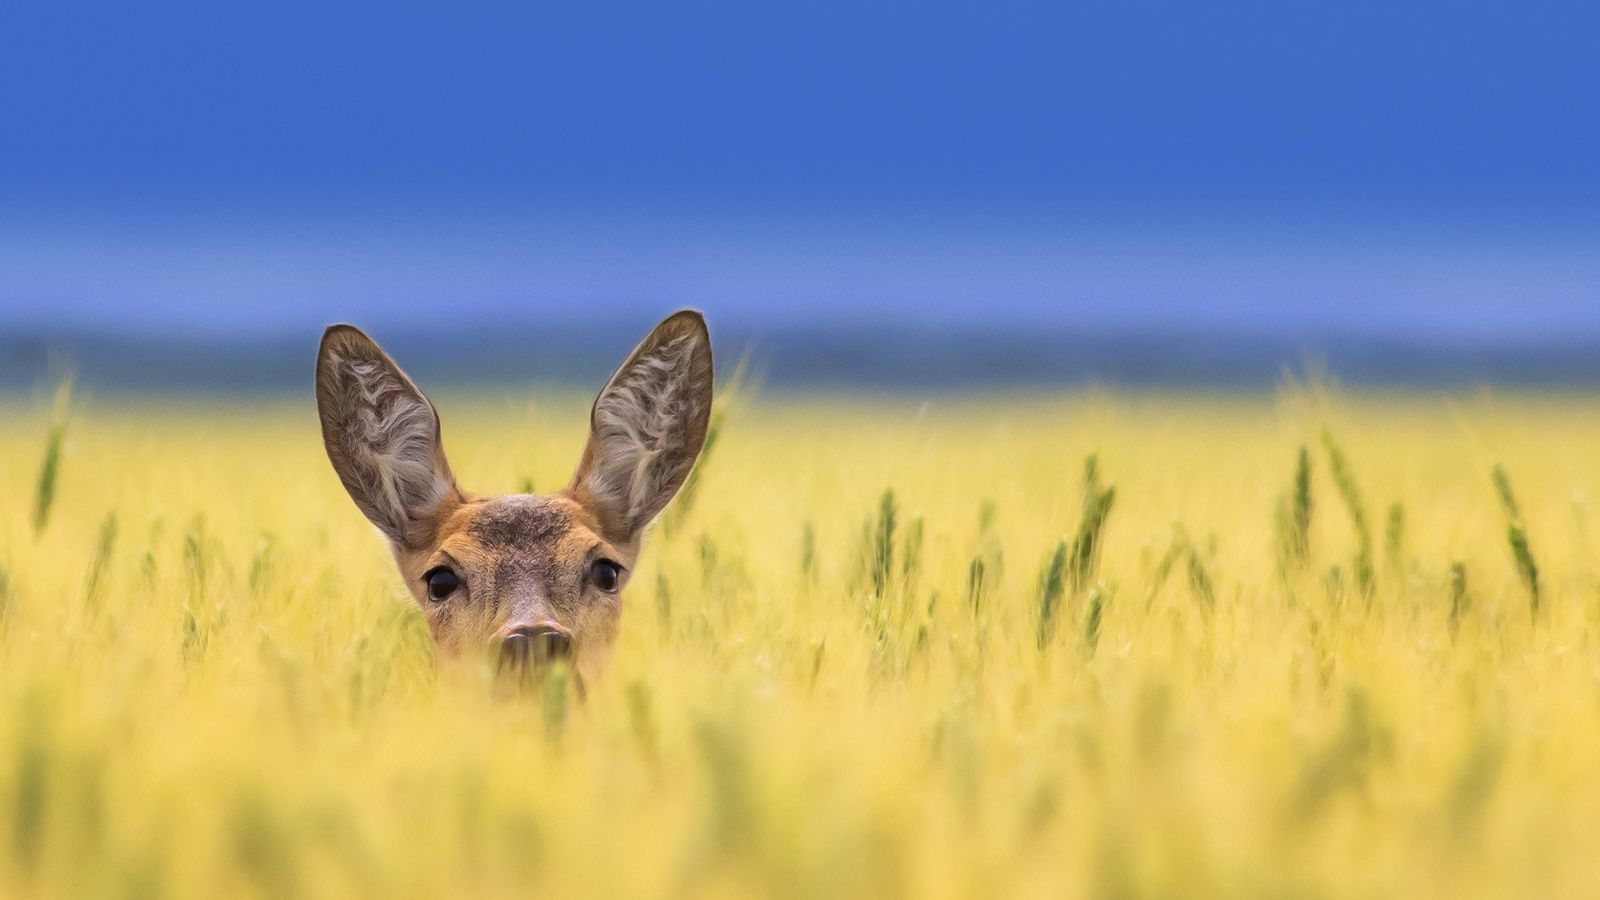 Your Shot photographer Zlatko Borenović documented this roe deer as it peeked out from high grasses.